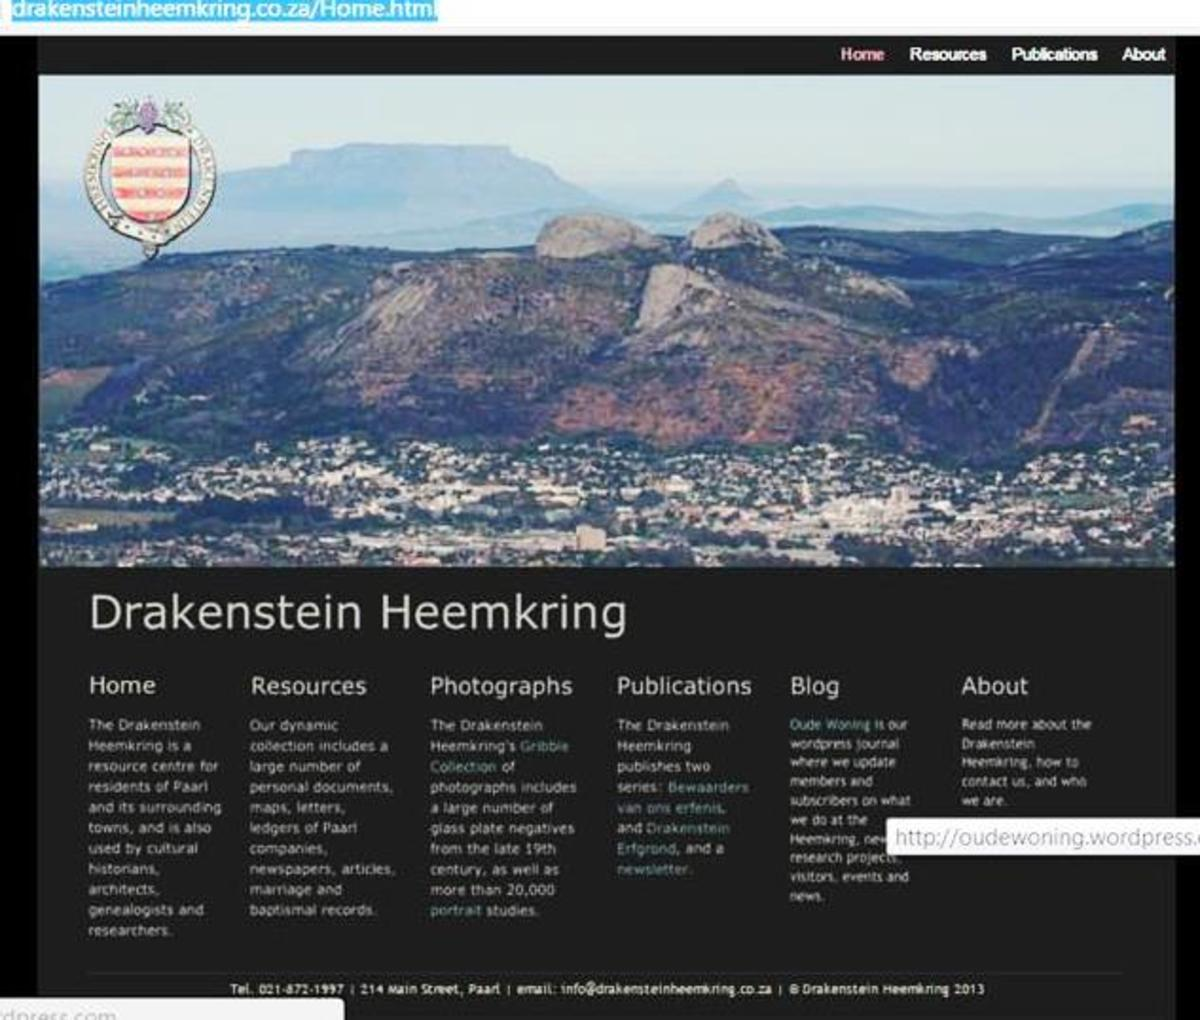 Website of the Drakenstein Heemkring